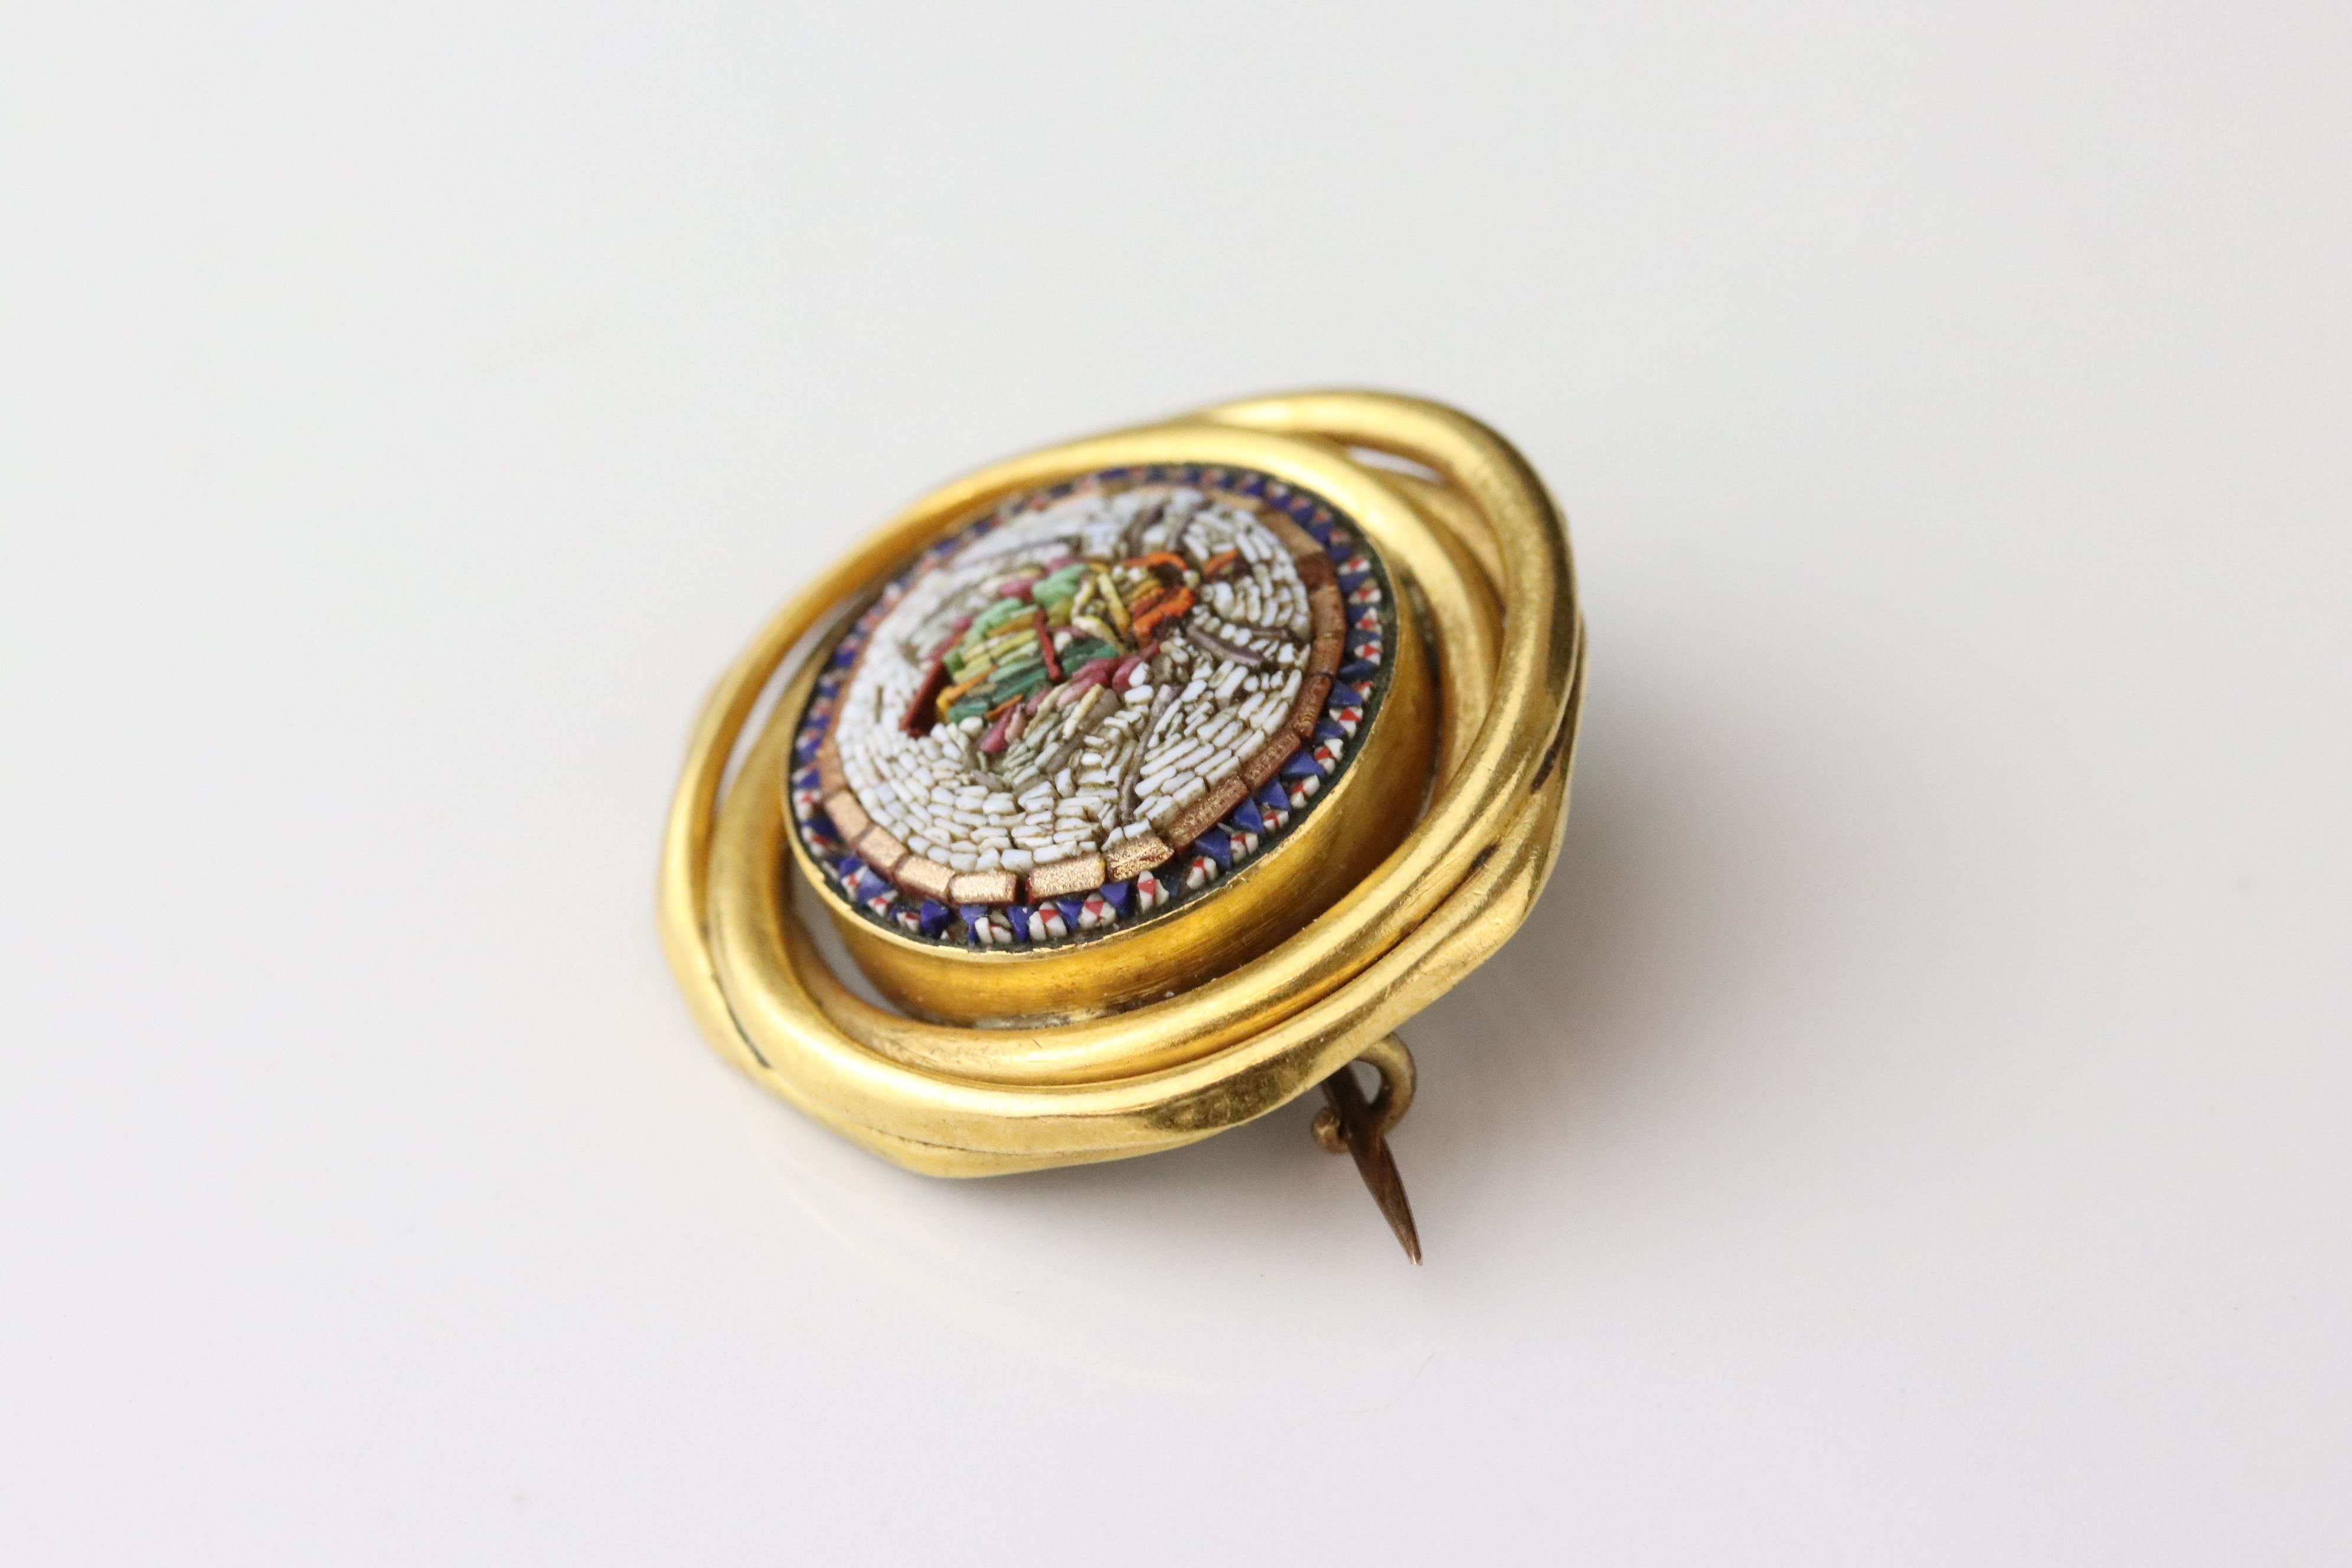 Victorian style micro-mosaic brooch depicting a fly, interwoven yellow metal surround, hinged pin - Image 3 of 4